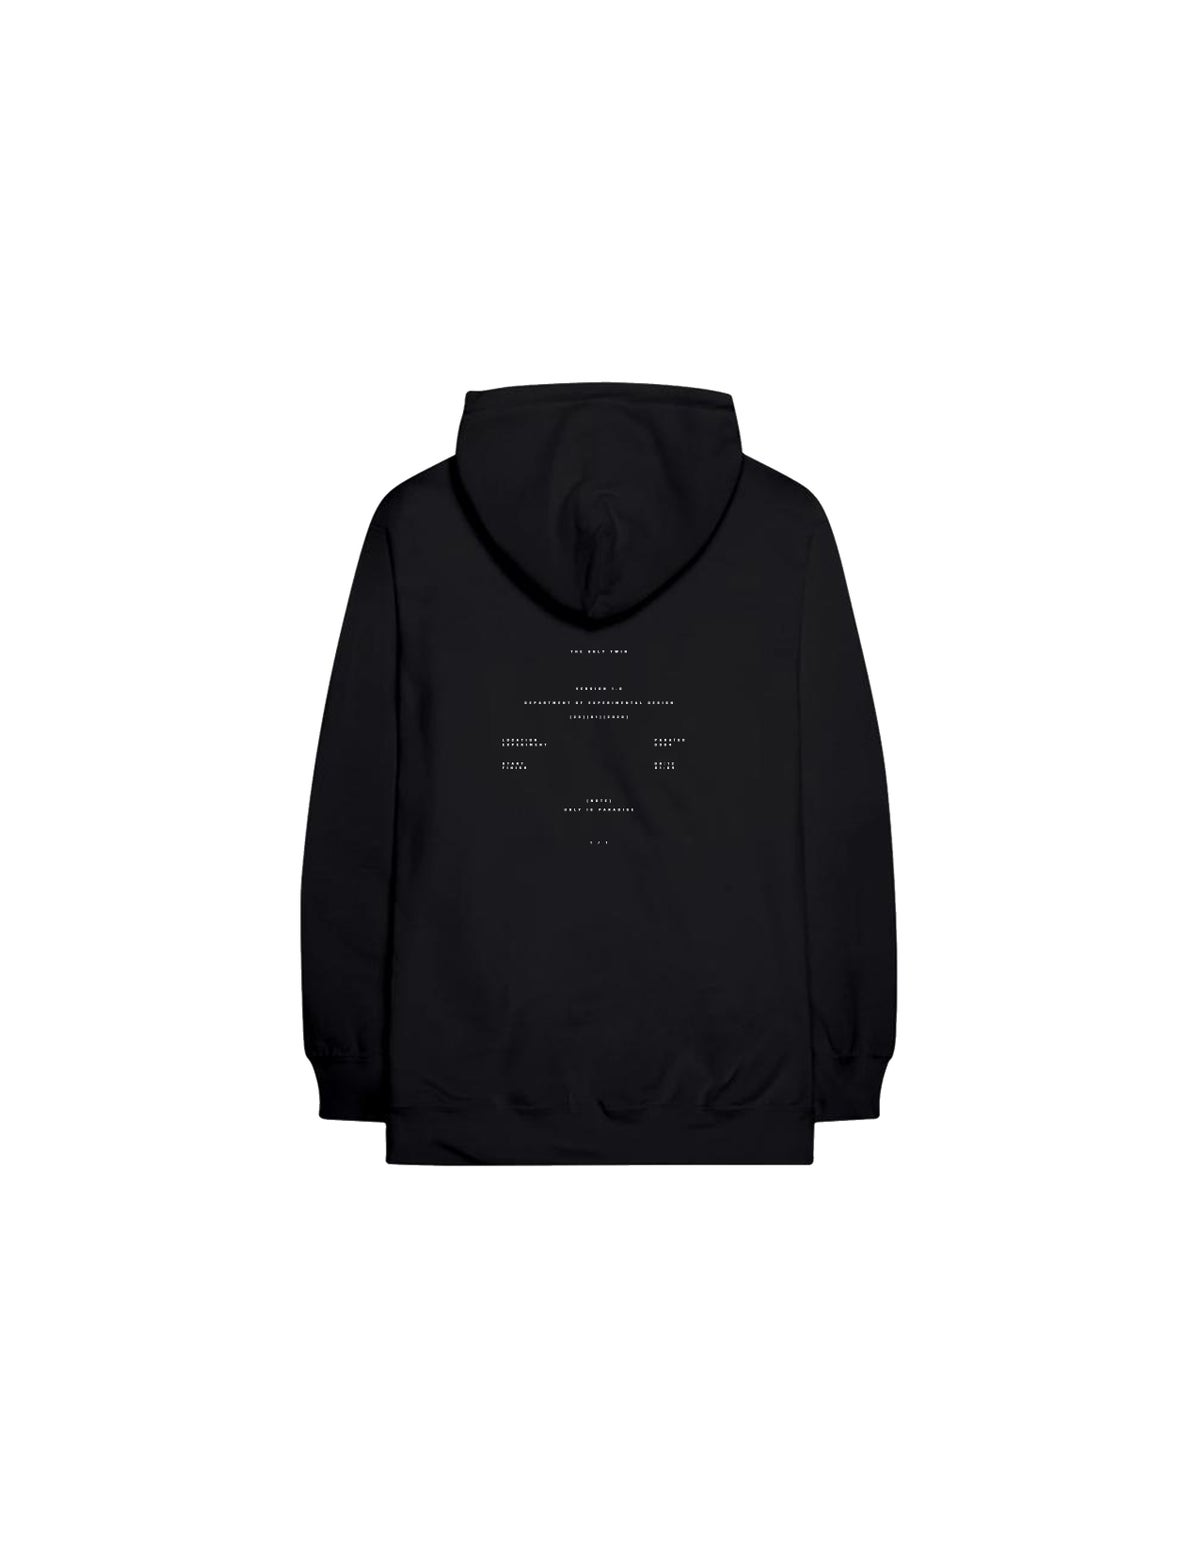 Image of Experiment0904 x Glitch Hoodie